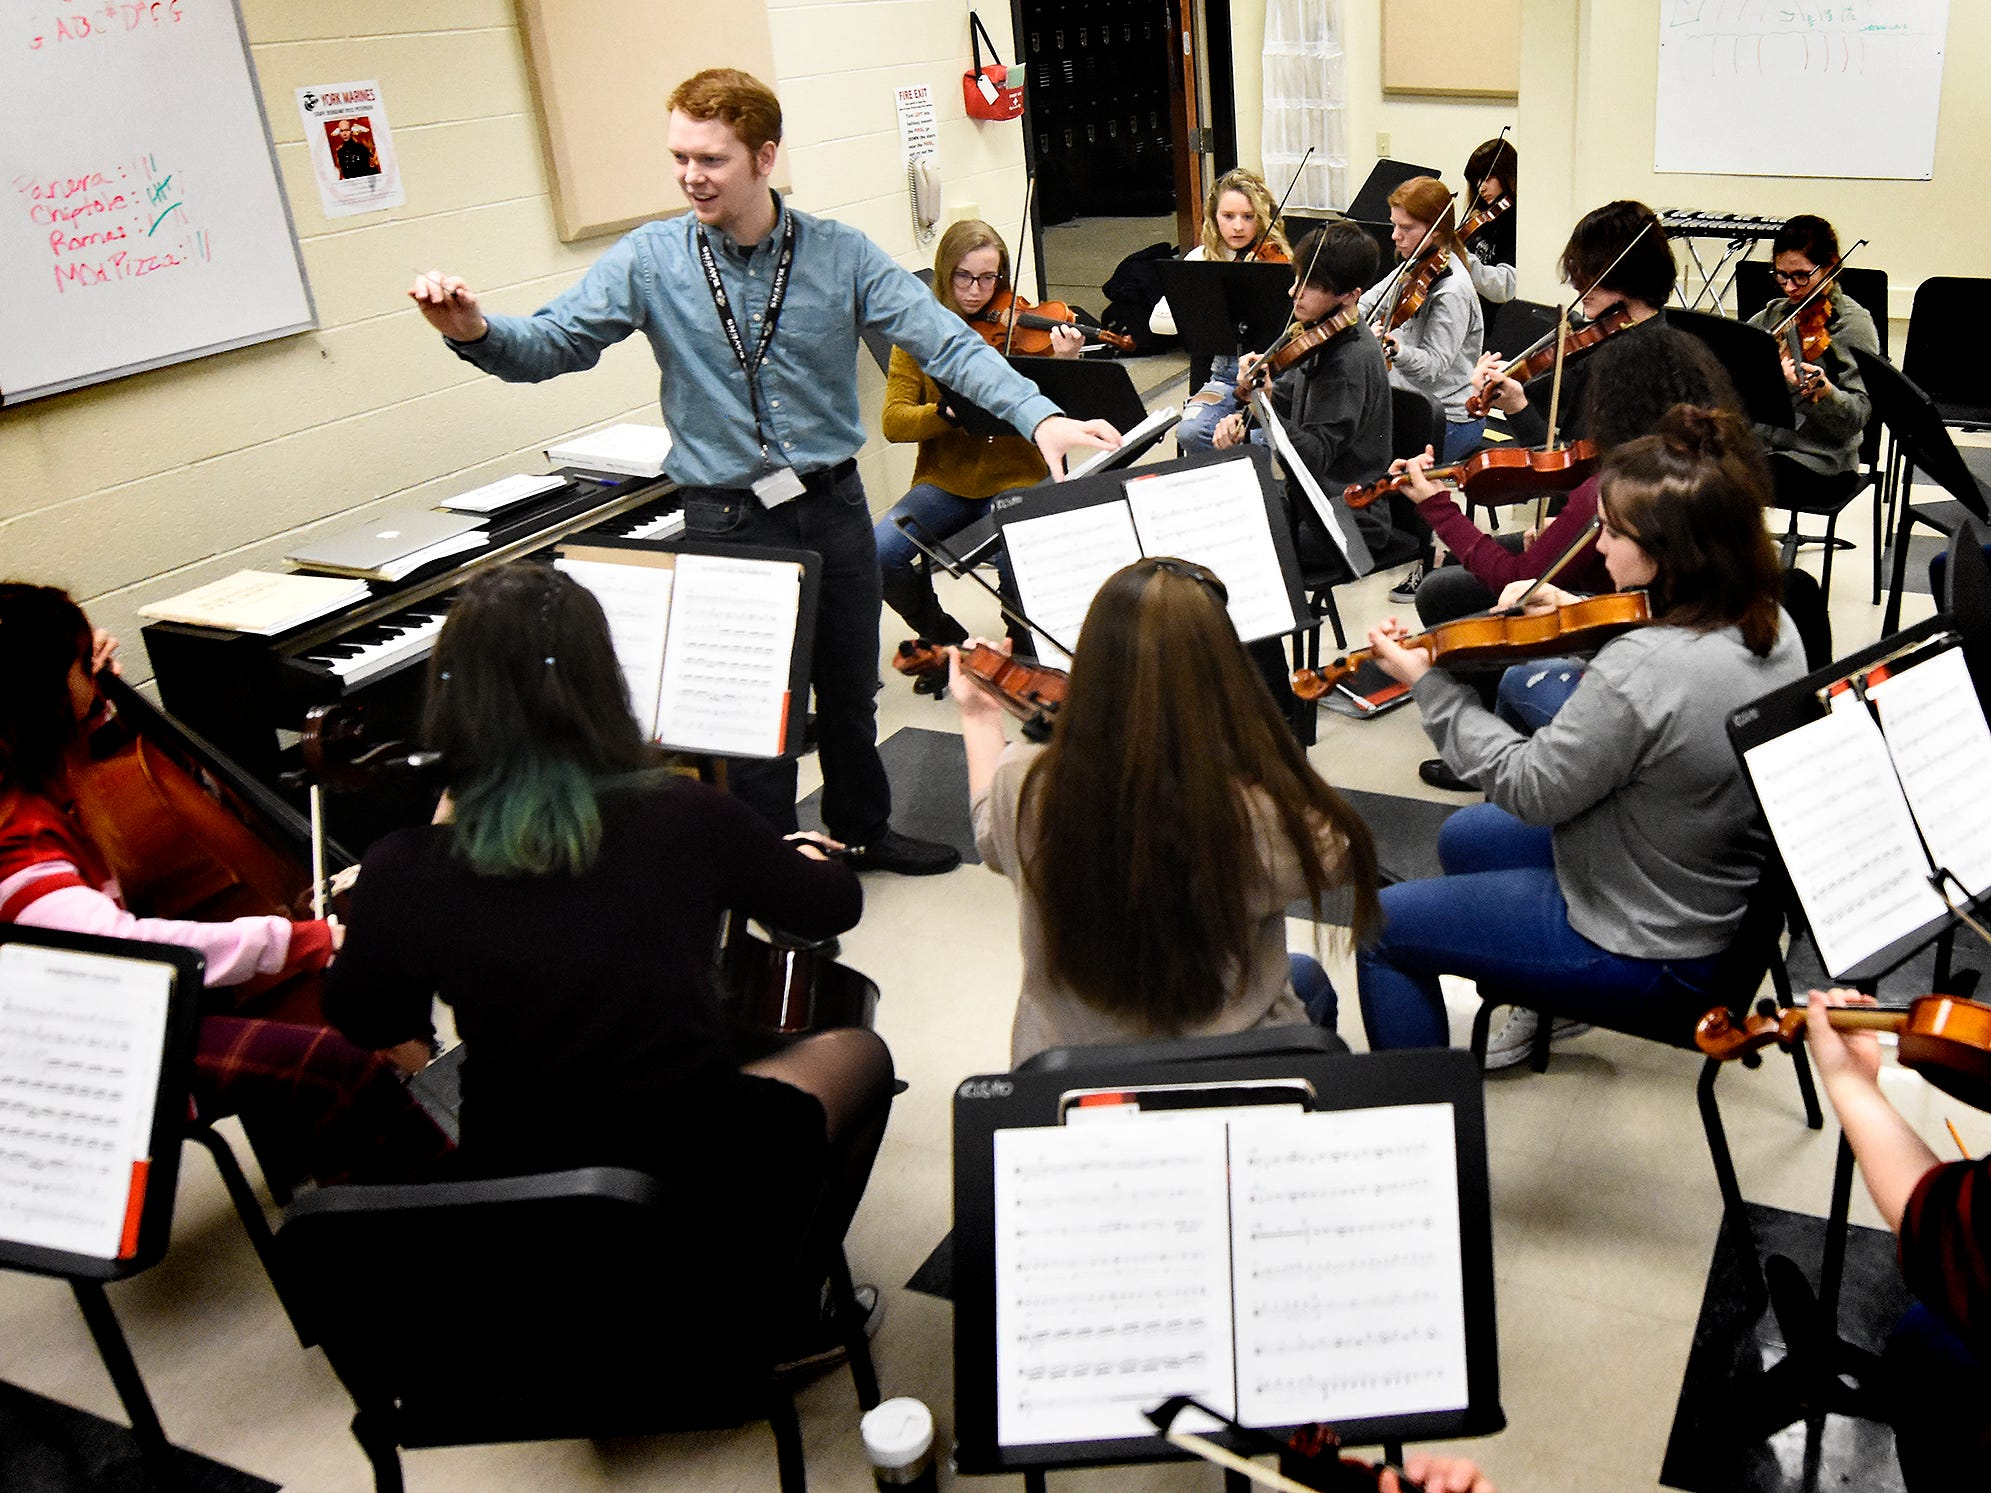 """Red Lion orchestra director Scott Kaliszak leads a rehearsal at the school Friday, March 1, 2019. The orchestra is working on """"Obsidian Rainbow"""" which was written by Red Lion graduate and New York composer Derek Cooper. He is premiering the piece via the Red Lion Area High School string orchestra on Wednesday, March 6. Cooper will be at the school working with the orchestra beforehand. Bill Kalina photo"""